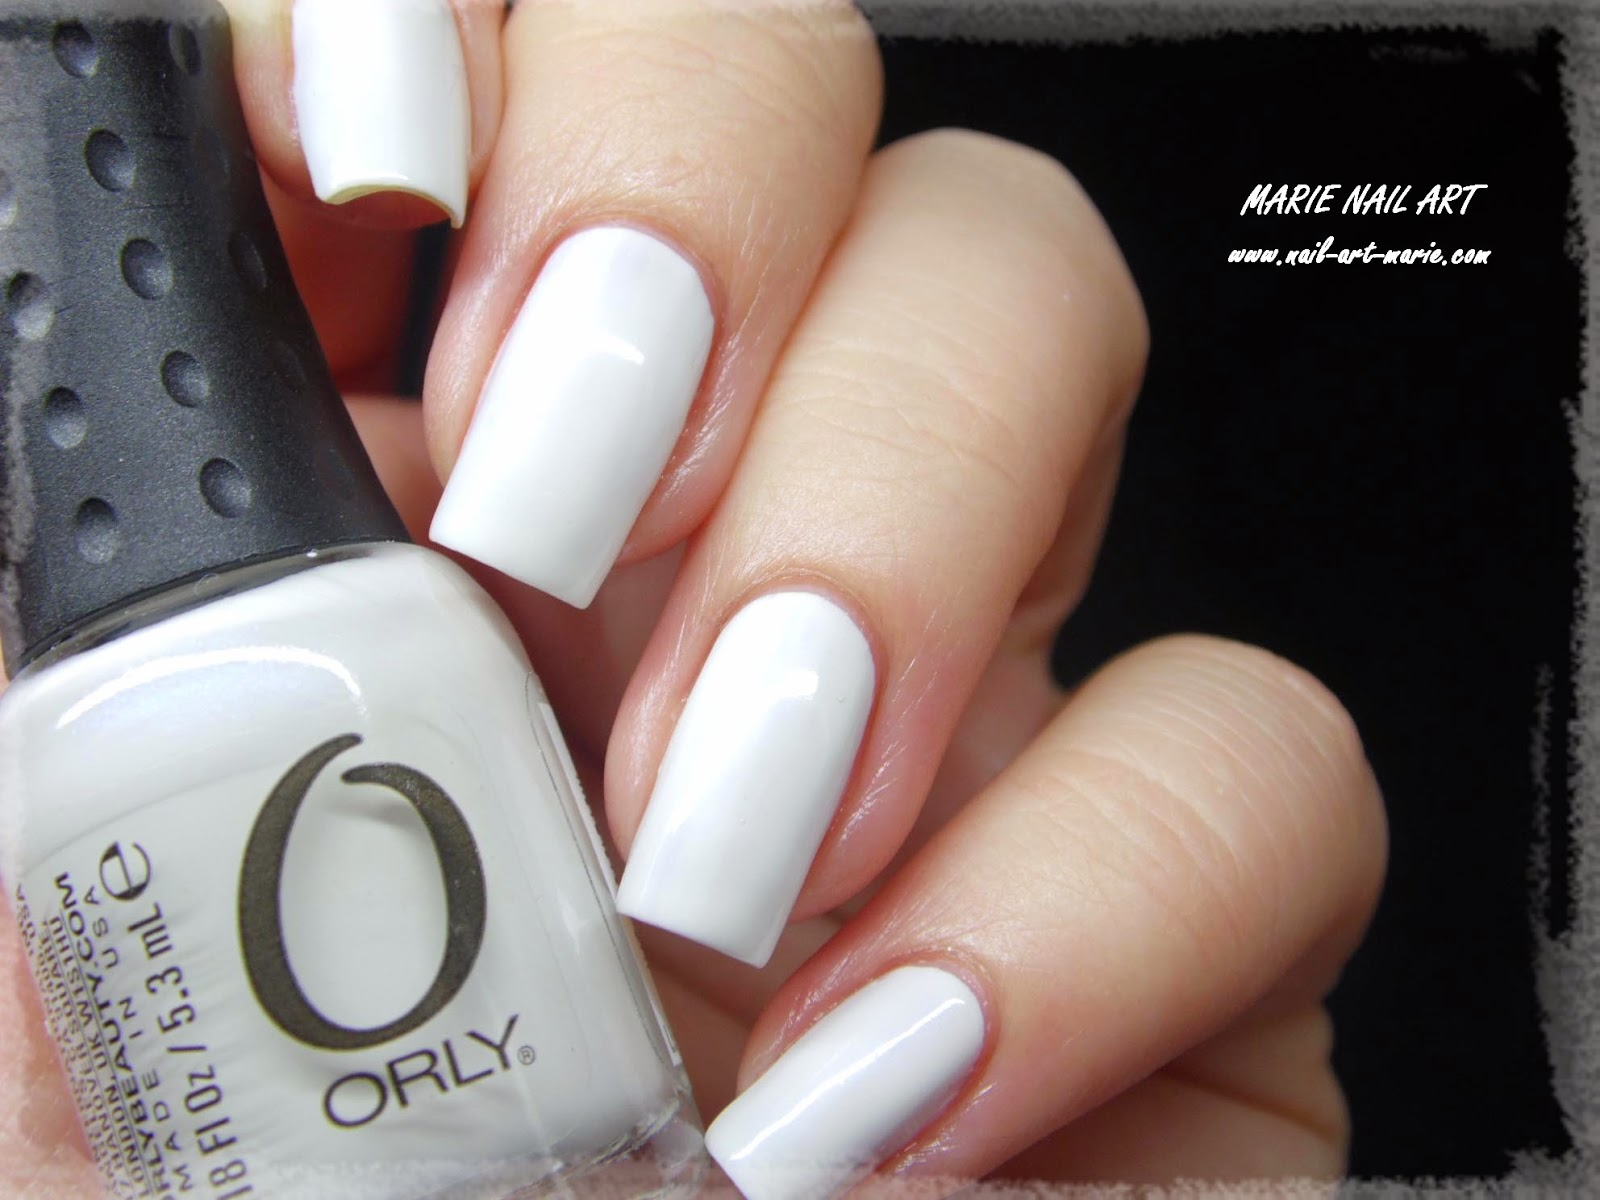 Orly Dayglow10